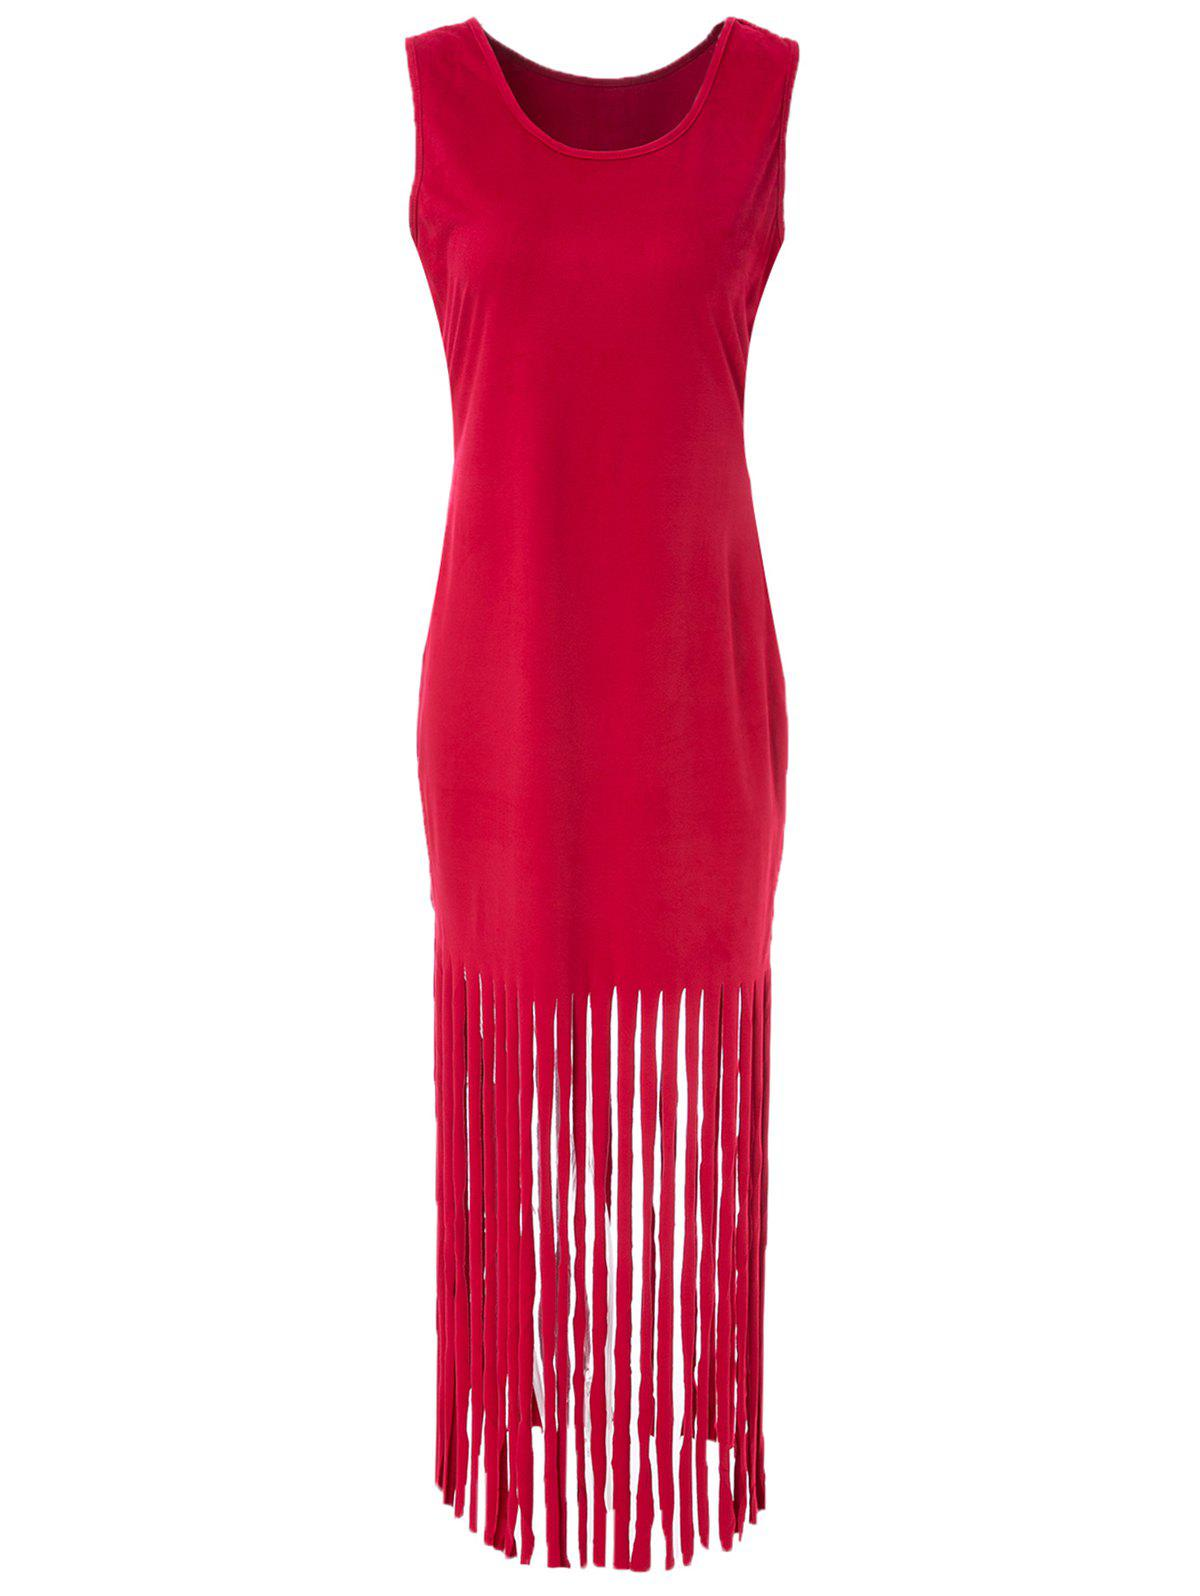 Sexy Scoop Neck Sleeveless Fringed Pure Color Womes DressWomen<br><br><br>Size: 2XL<br>Color: RED